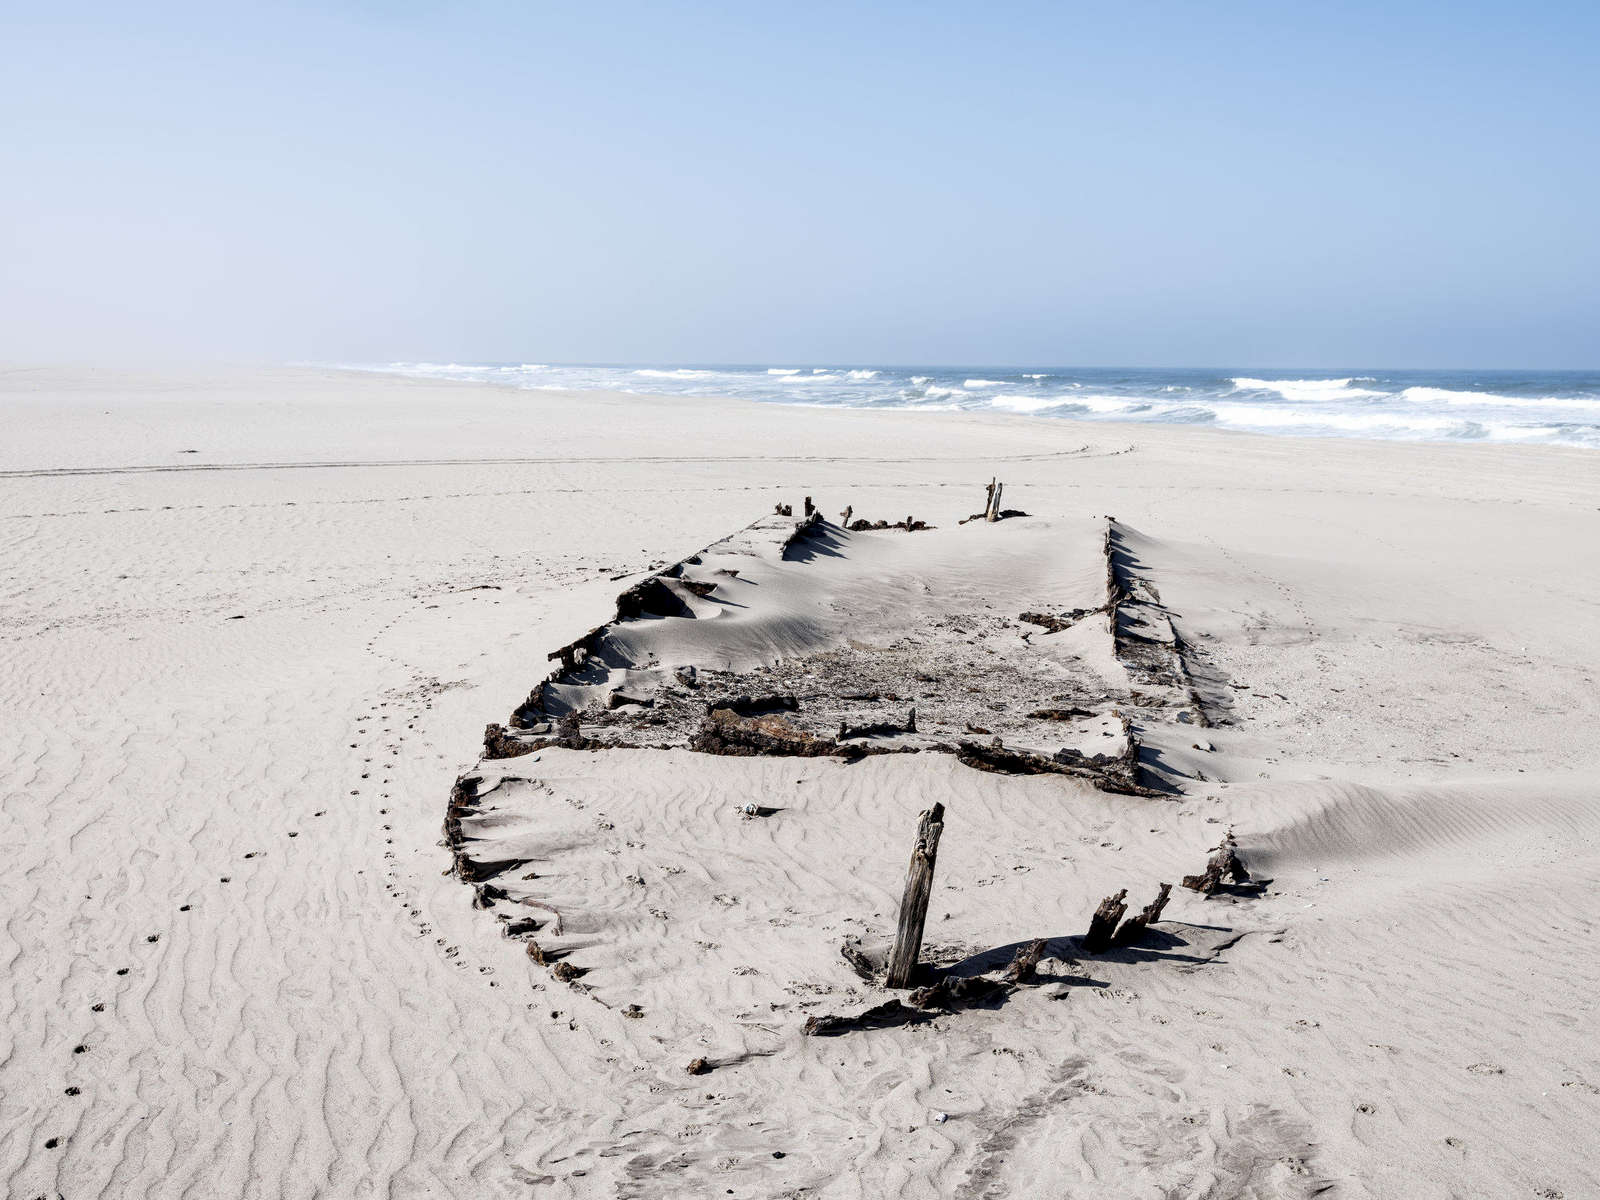 Unknown boat. The harsh climate has destroyed most of it, but the parts under the sand remain as testament to the crash. It is likely often completely covered and invisible. S21°13'43.4E013°39'41.8